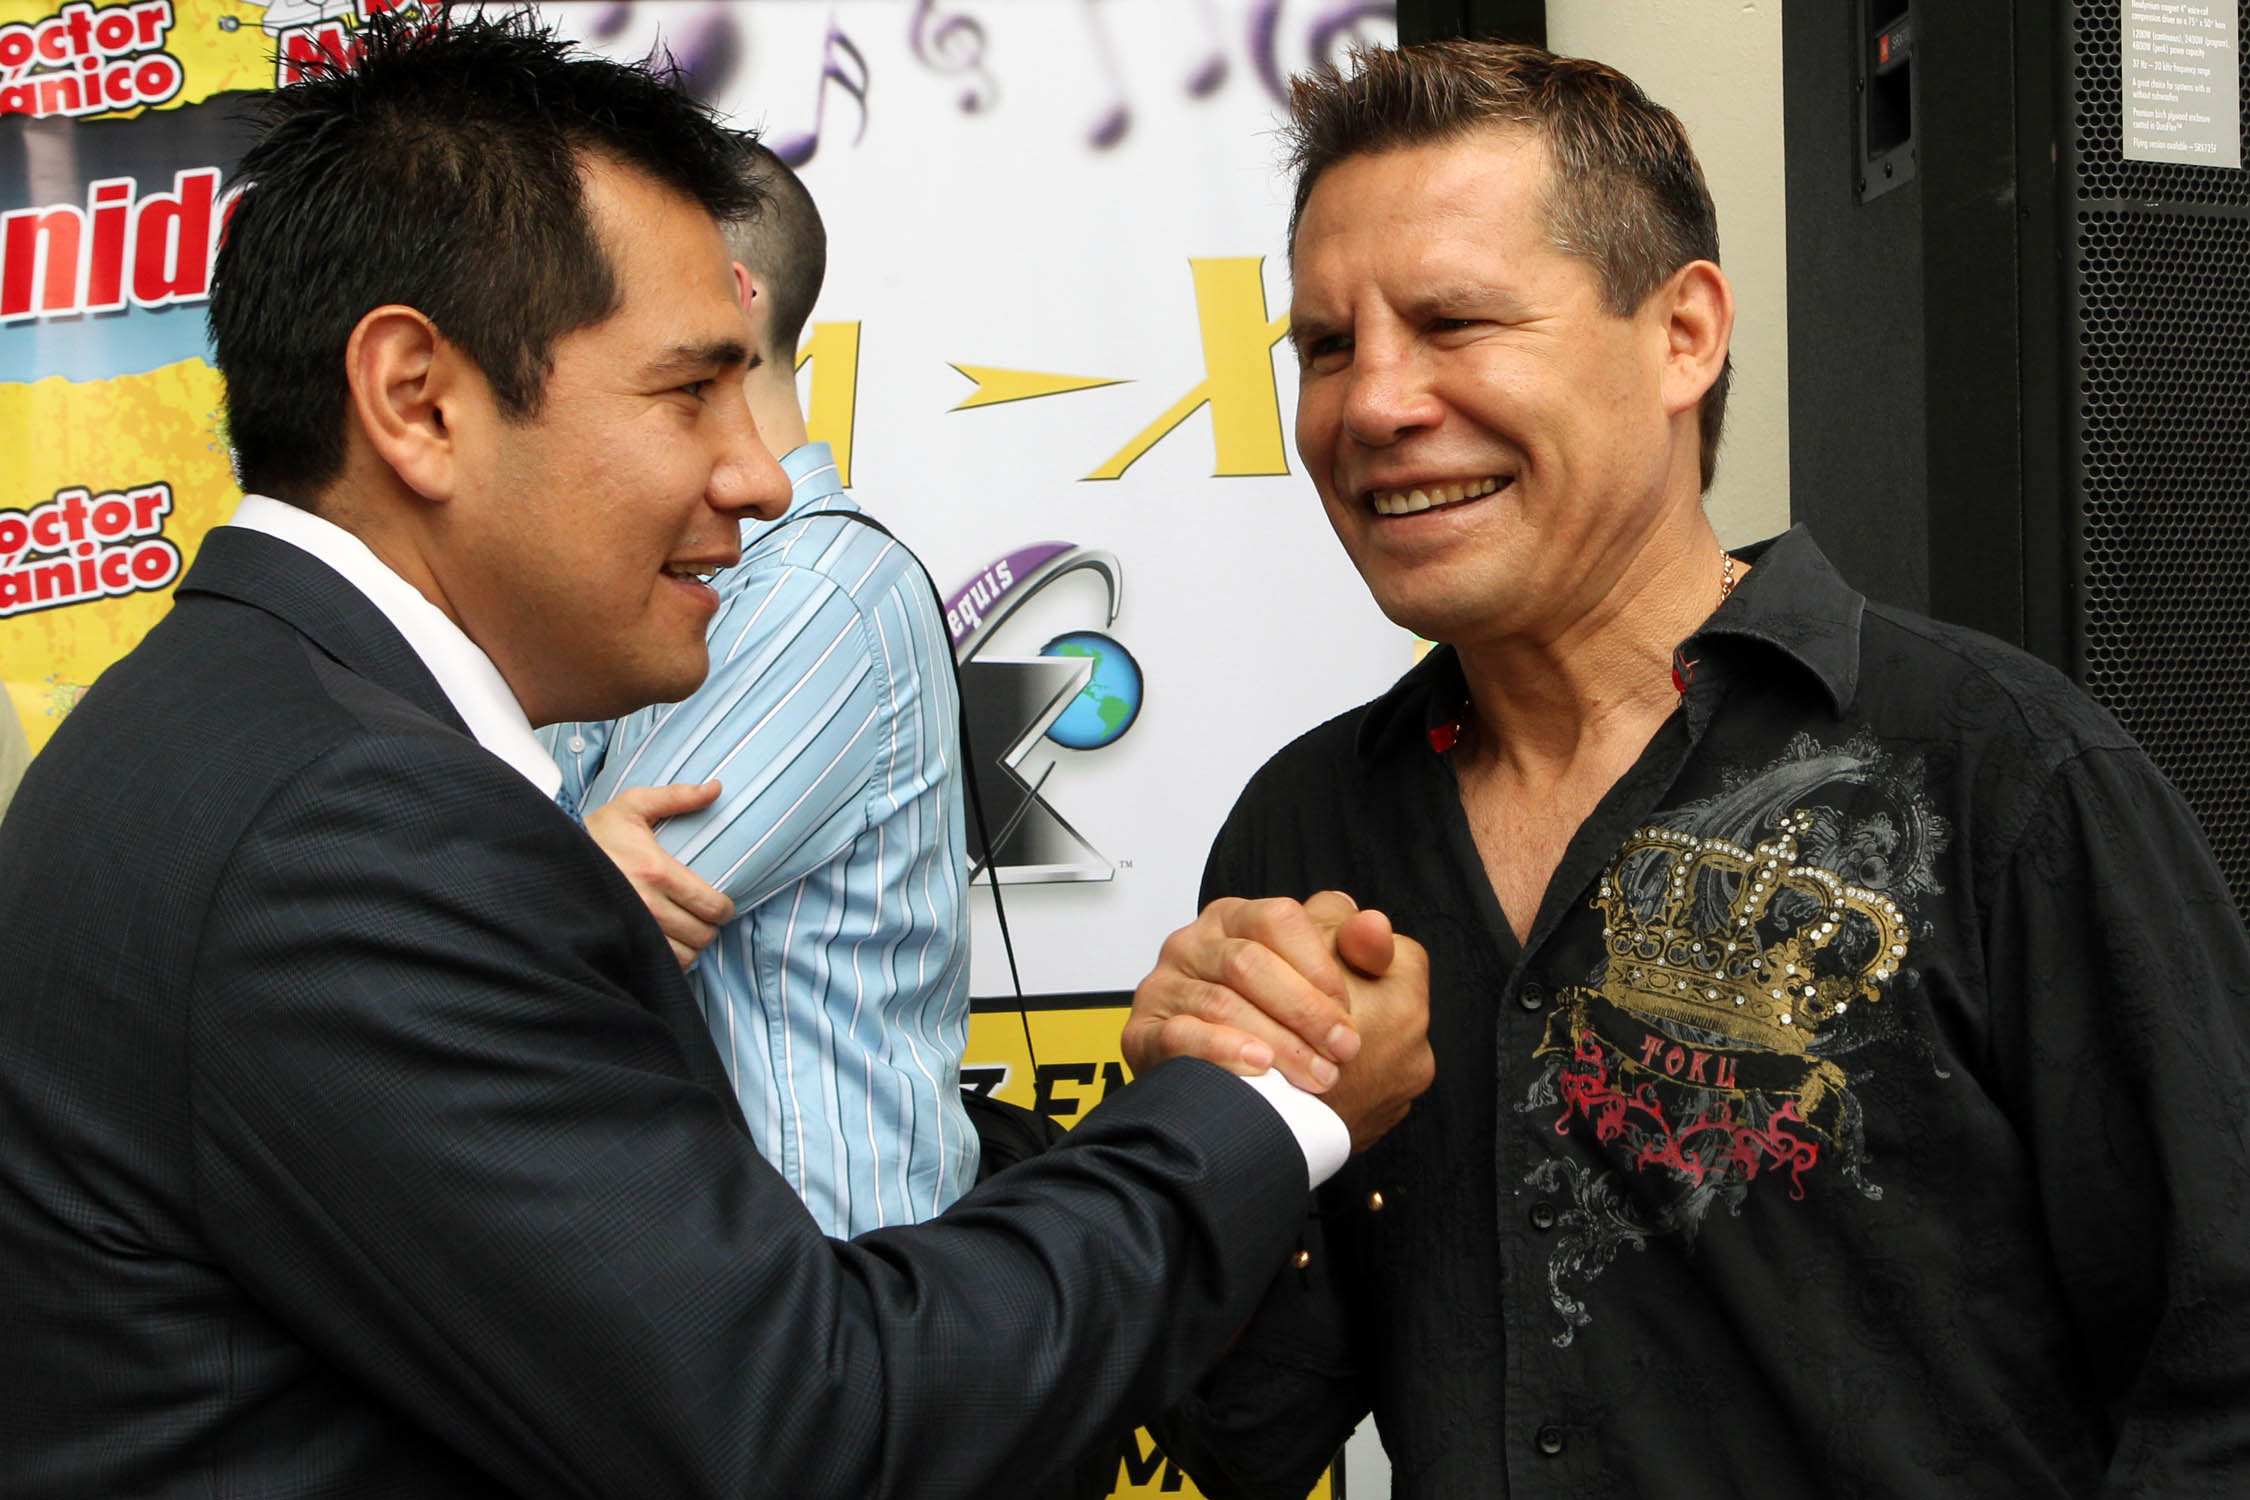 Marco Antonio Barrera (left) and Julio Cesar Chavez. Photo taken on April 15, 2011 by Tom Casino/Showtime